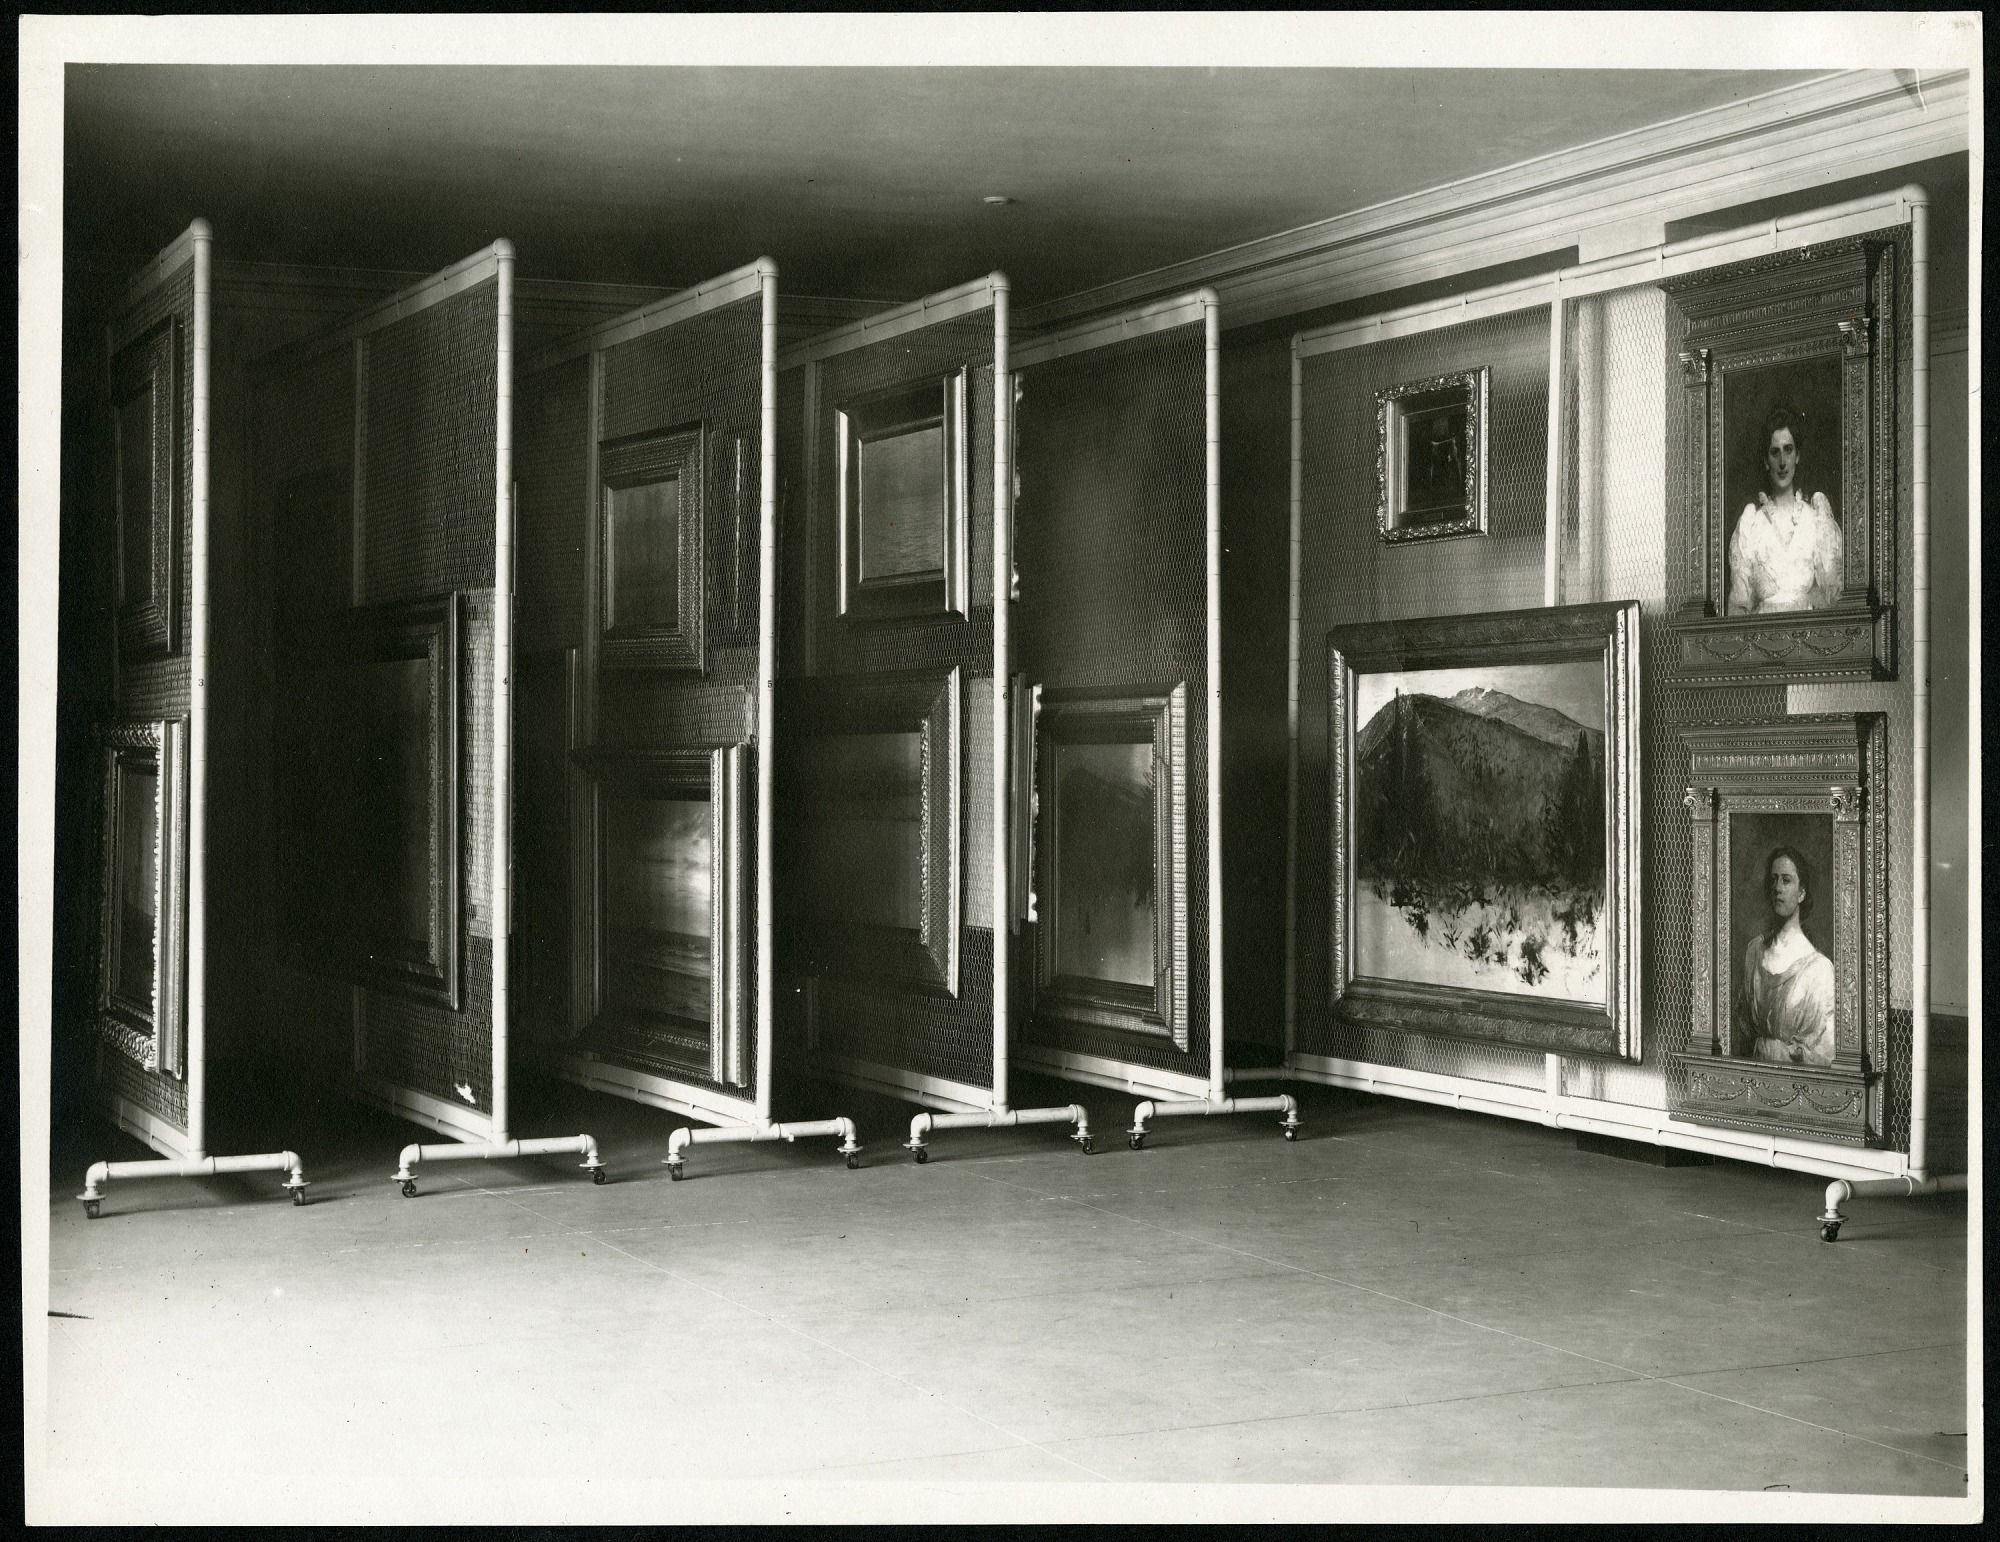 Preview of Photograph of American Paintings Hanging on Rolling Storage Racks